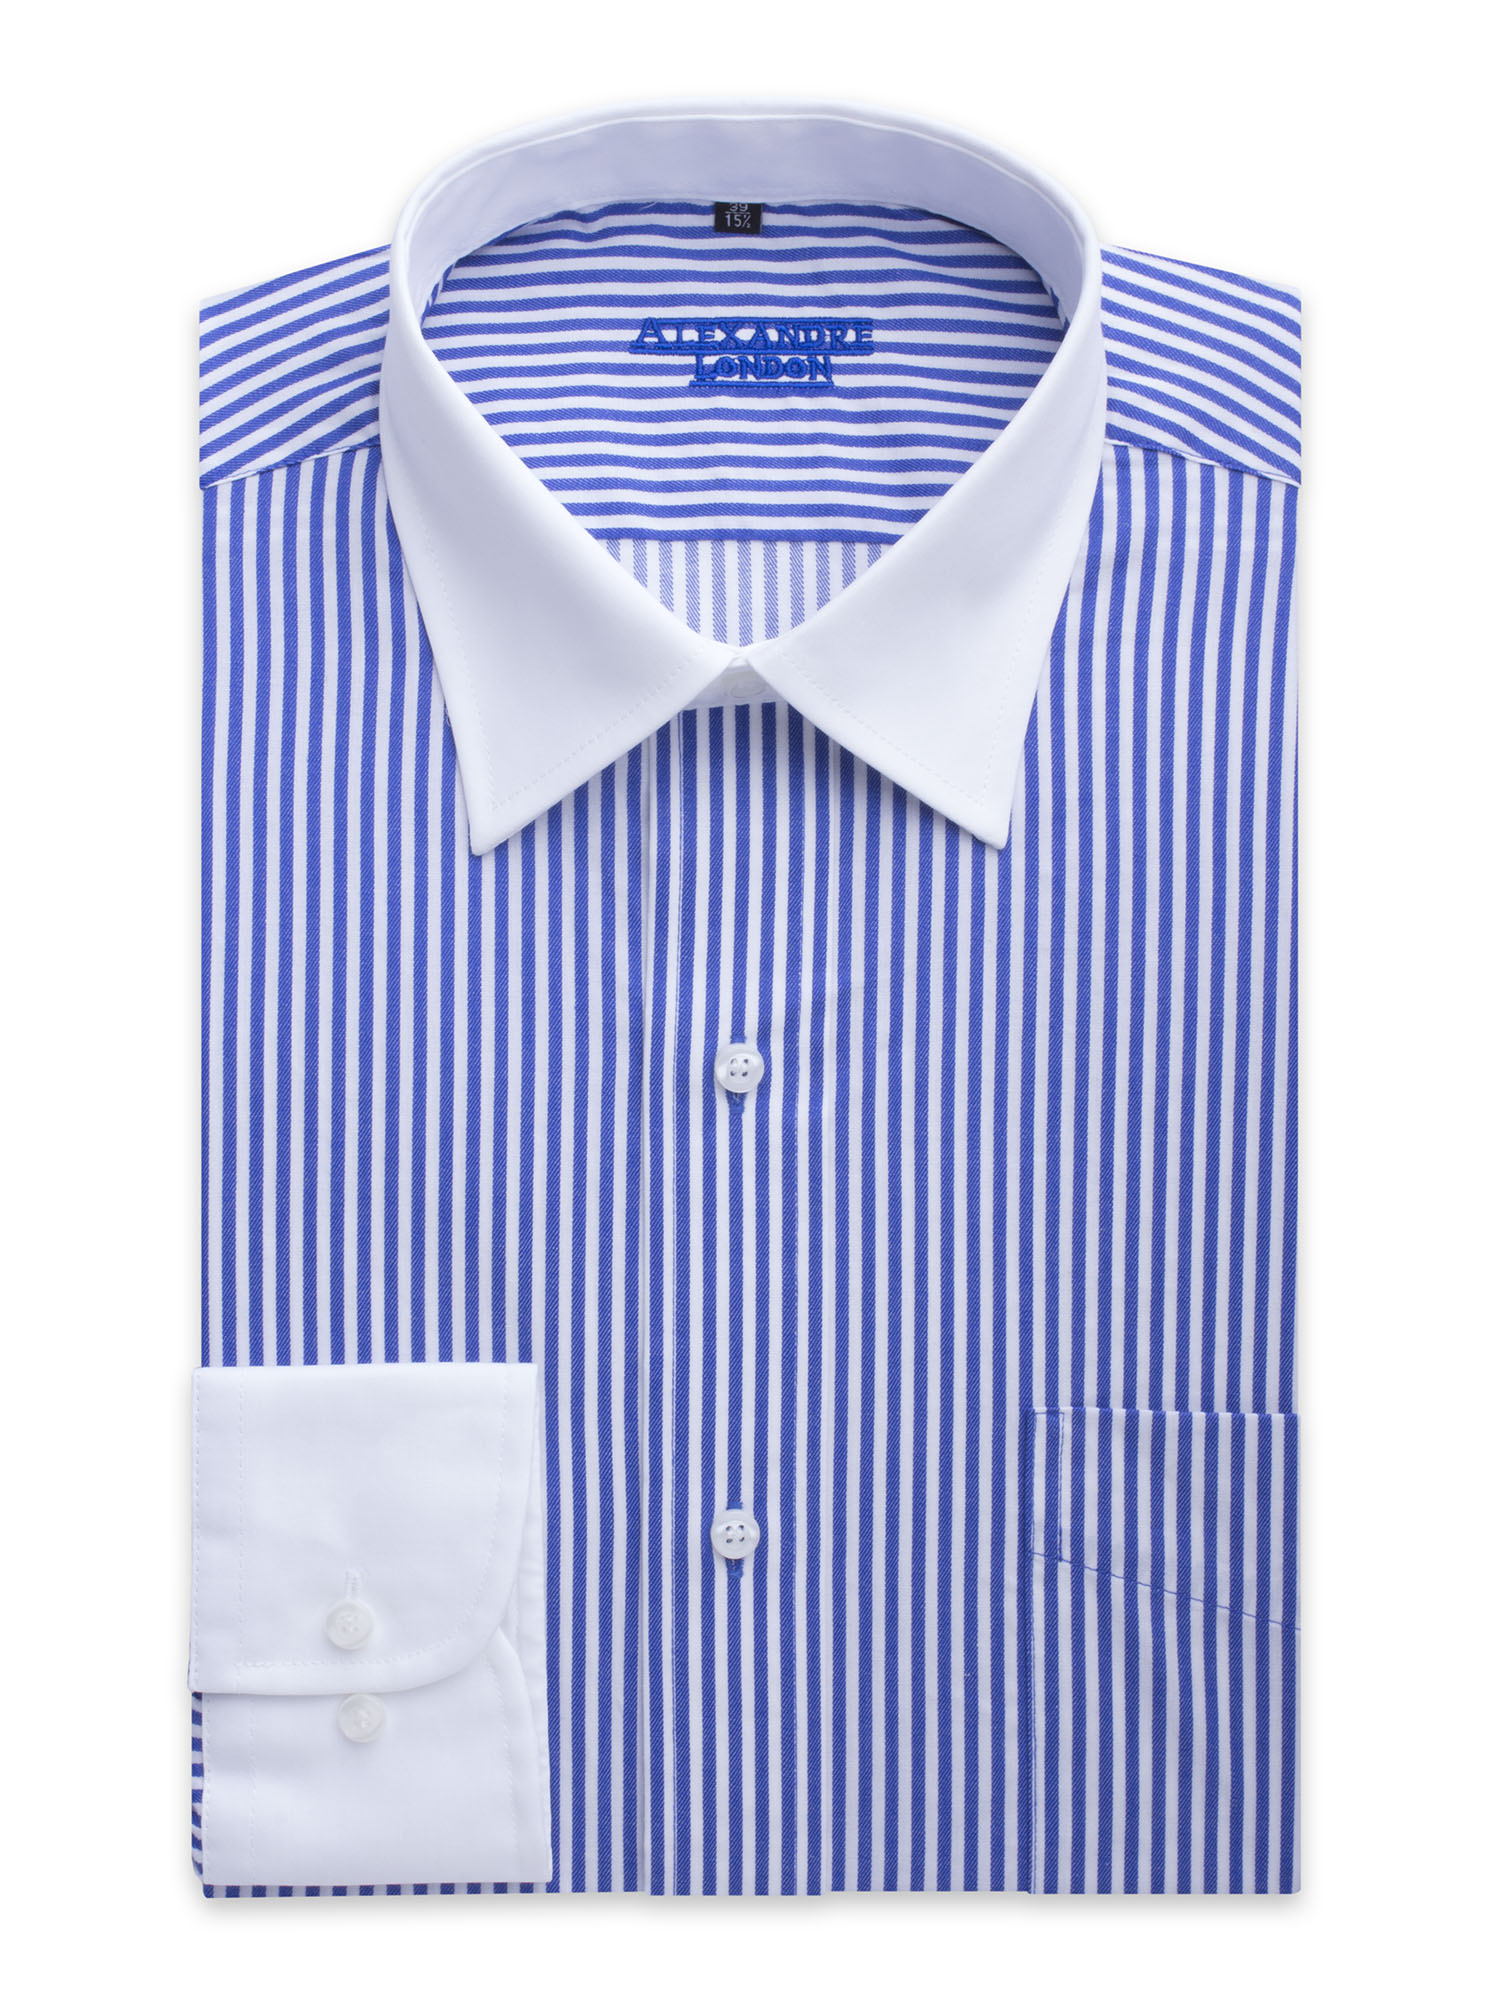 MENS BLUE AND WHITE STRIPE COTTON SHIRT WITH WHITE COLLAR AND CUFF ...